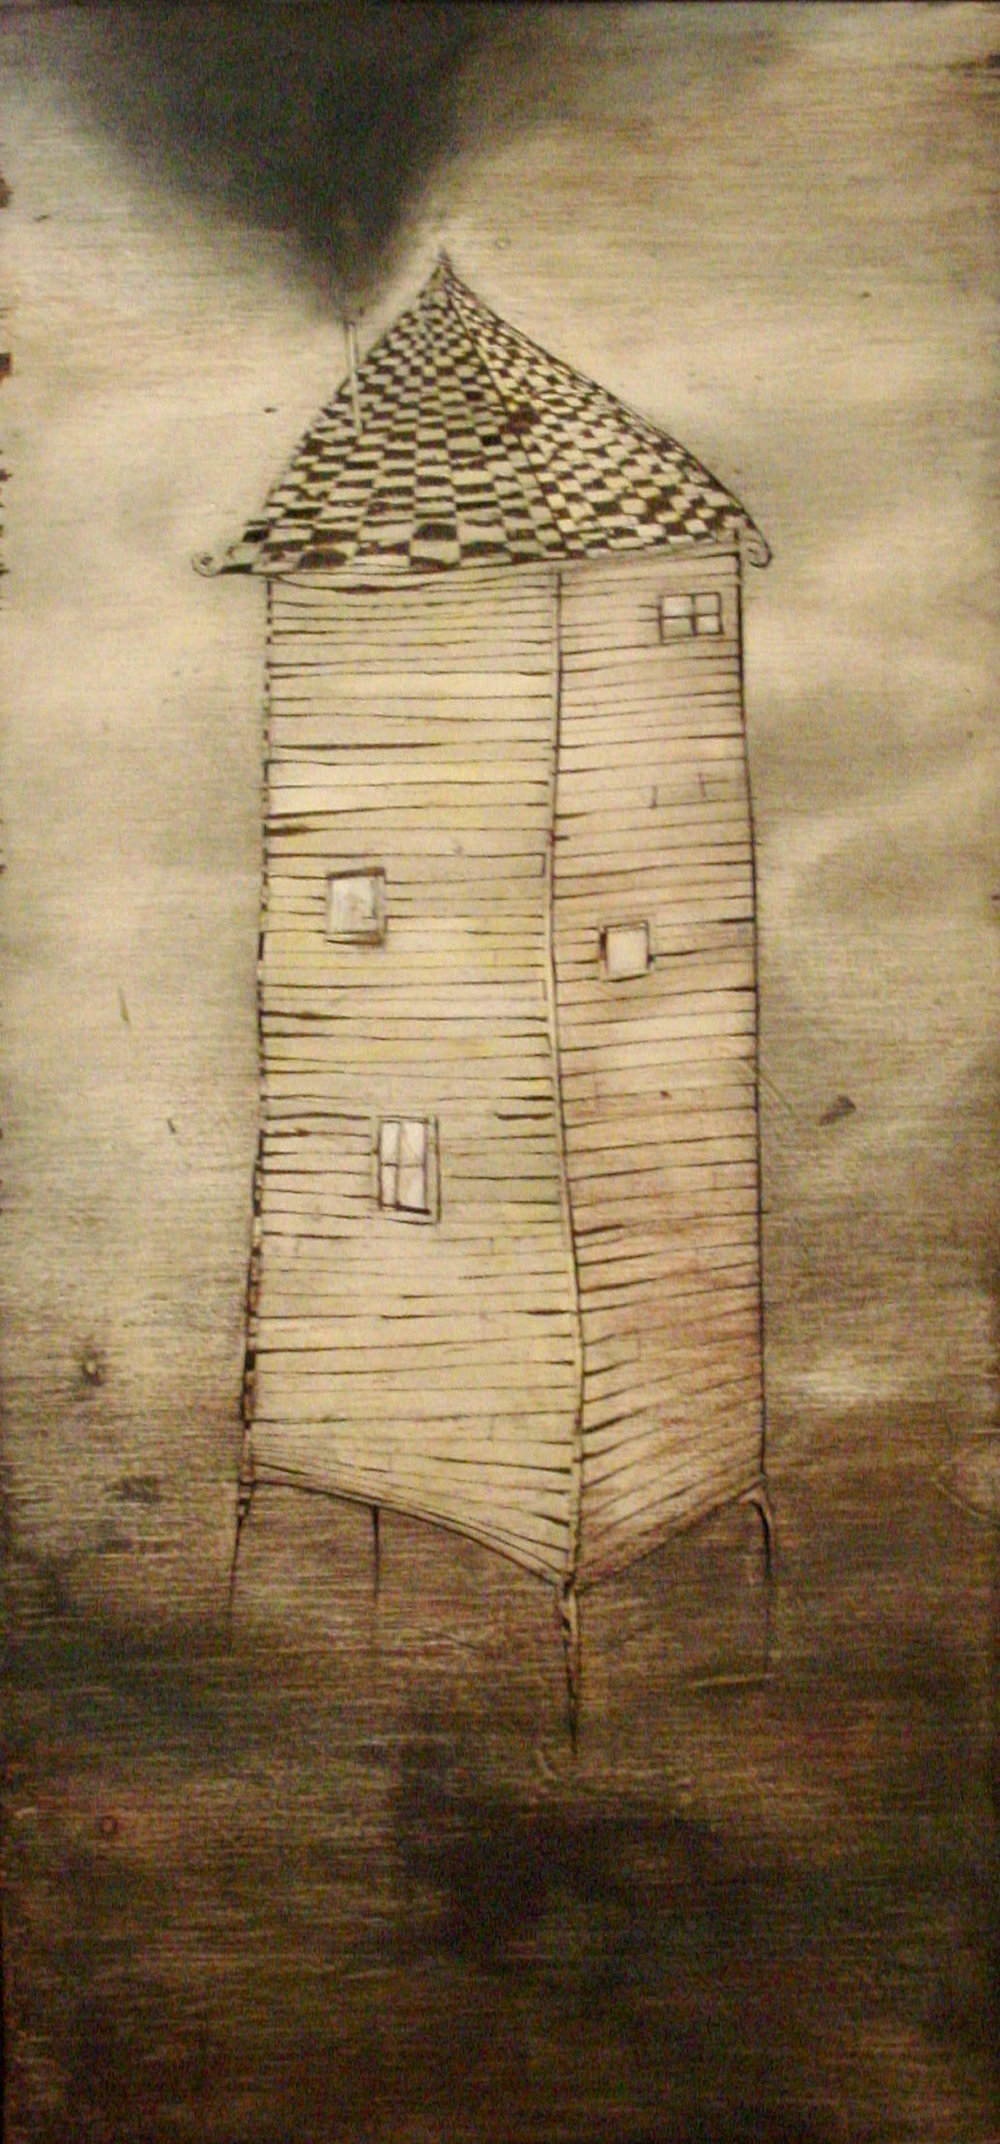 Smoke Tower, Oil on Wood, 24x50 in, Robert Hite, 2009, sold